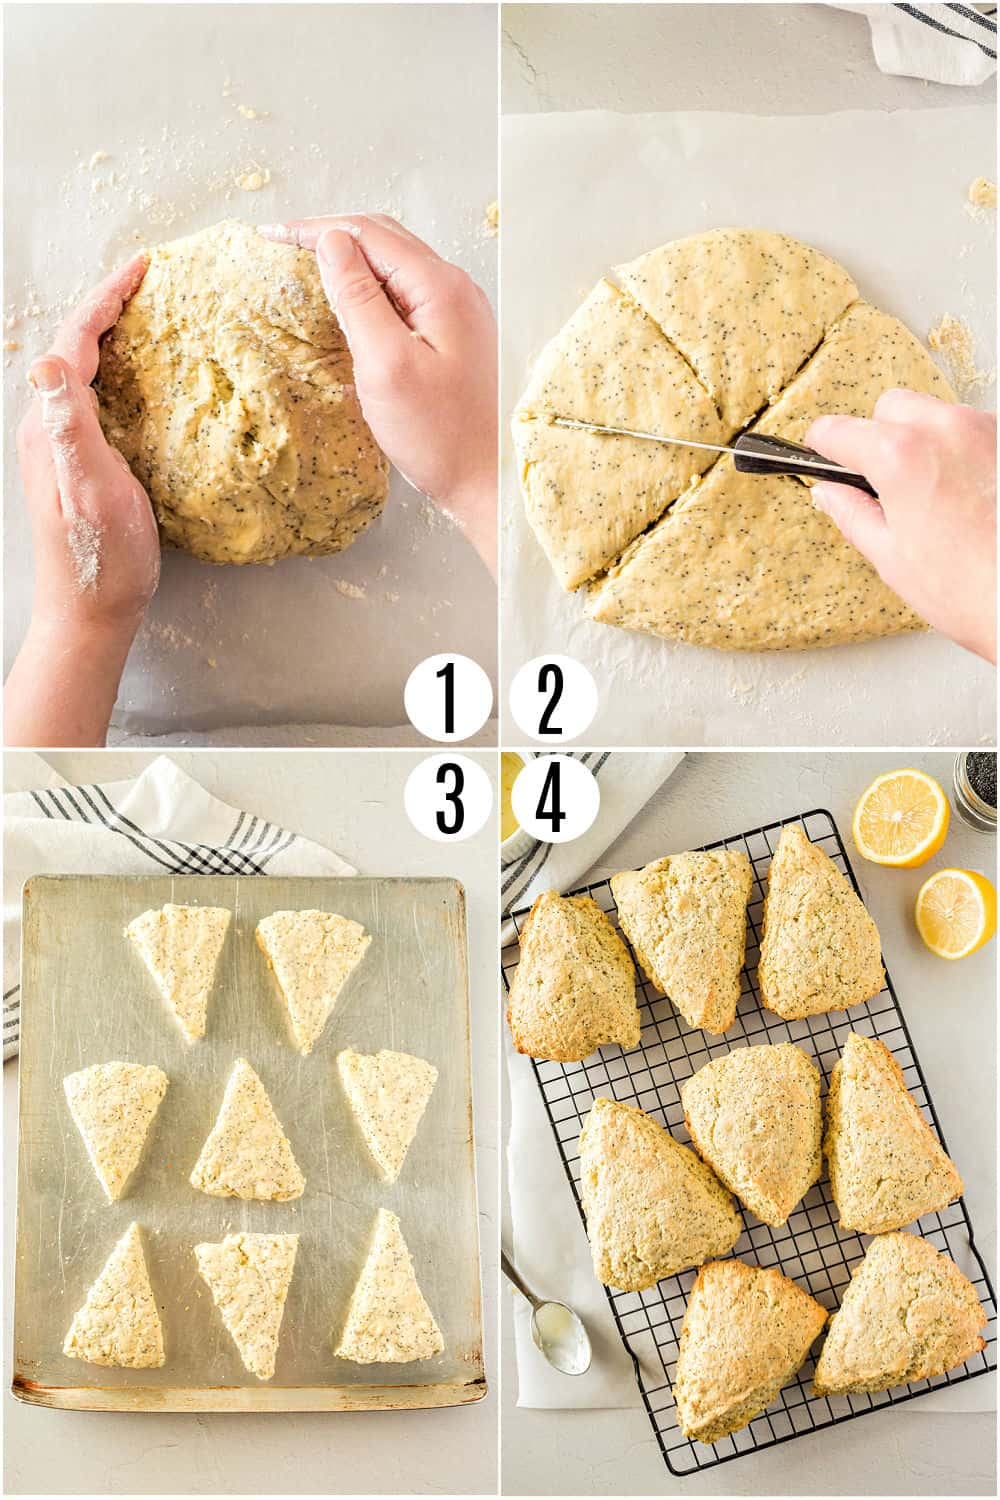 Step by step photos showing how to knead and shape dough for lemon scones.